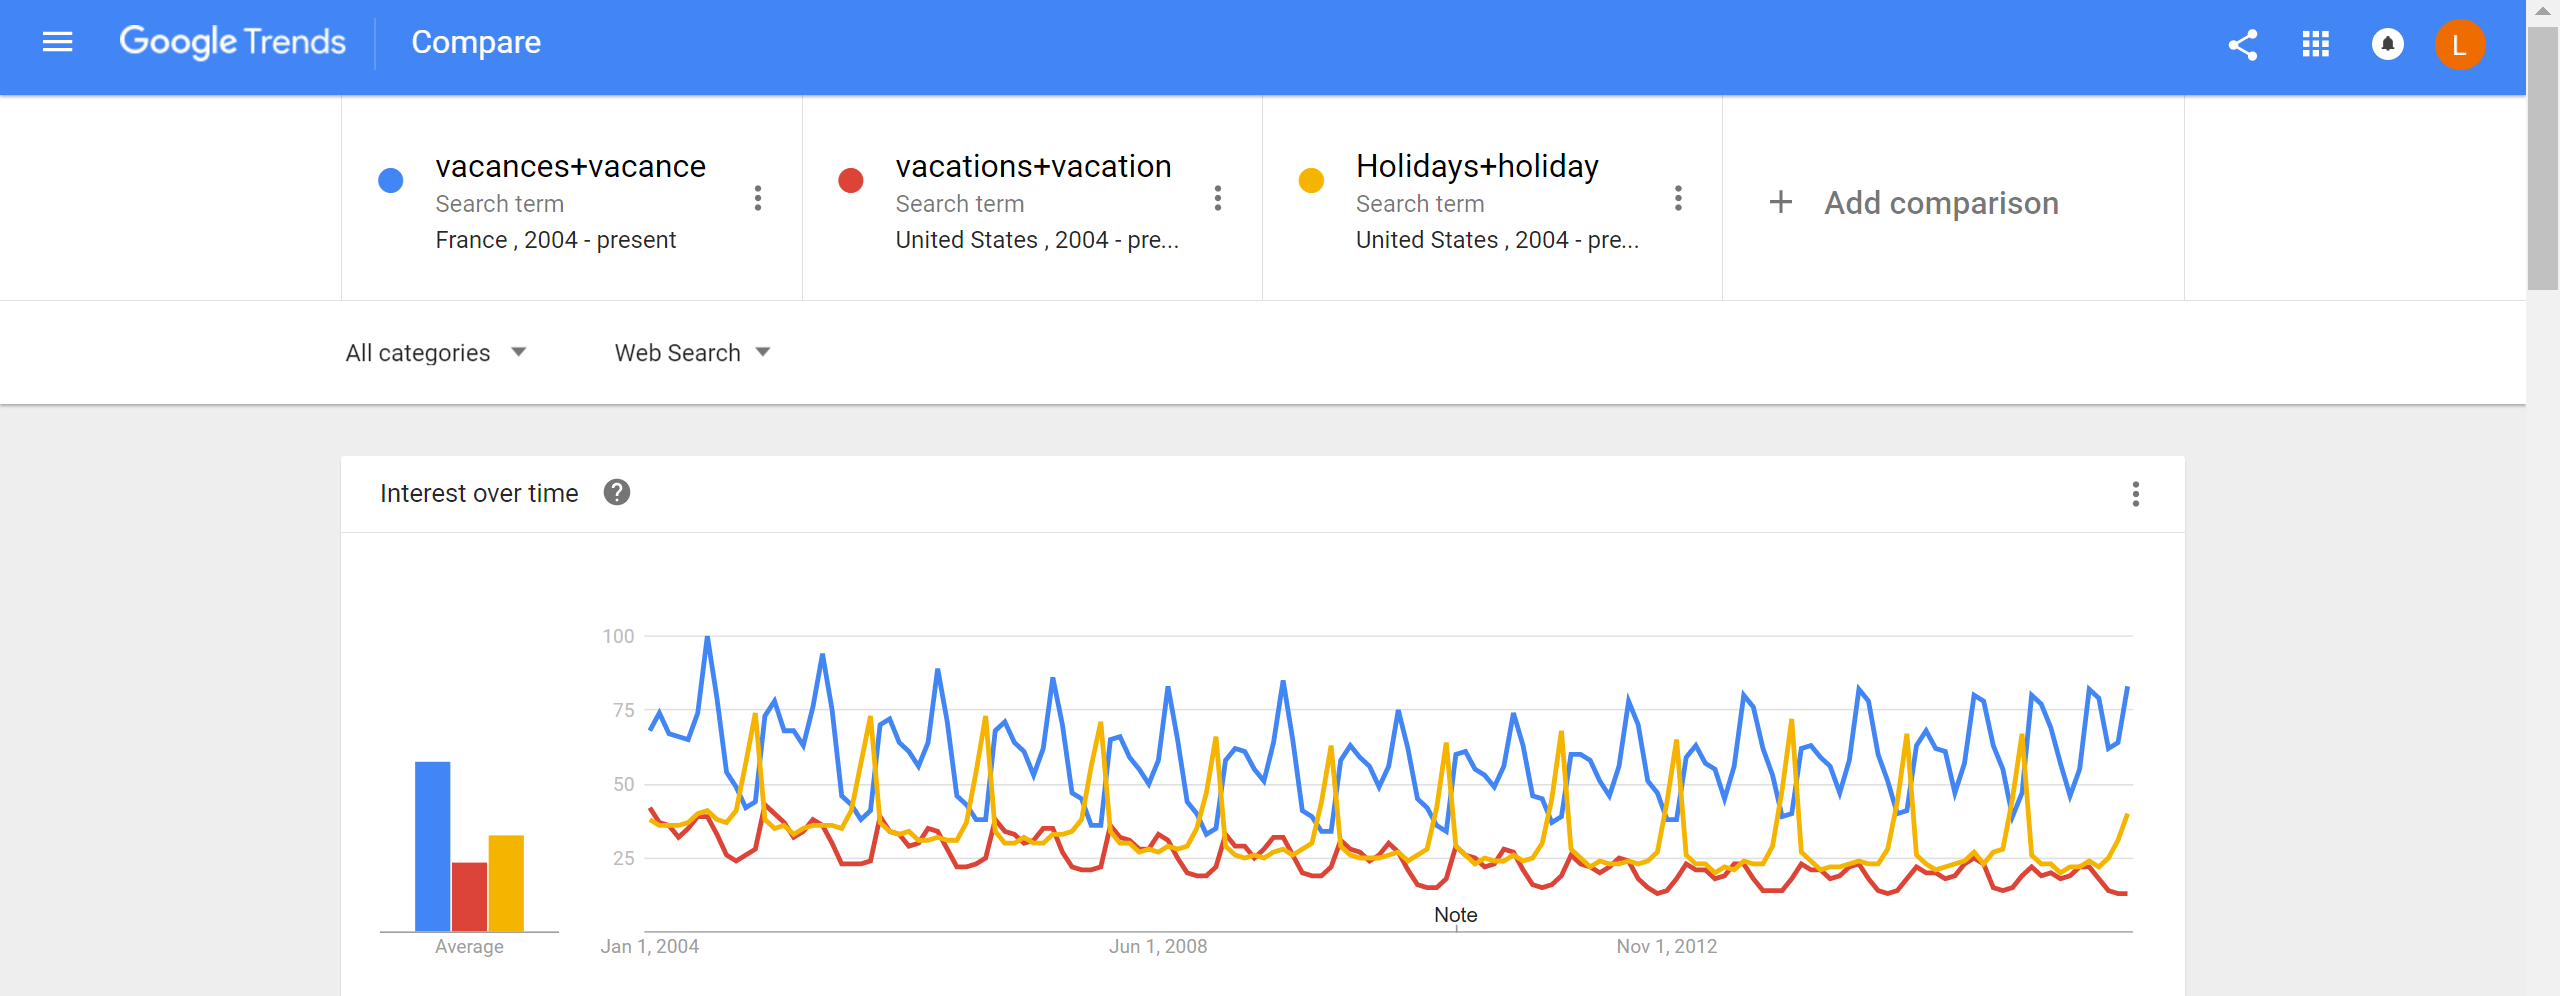 vacances vs vacations vs holidays.png